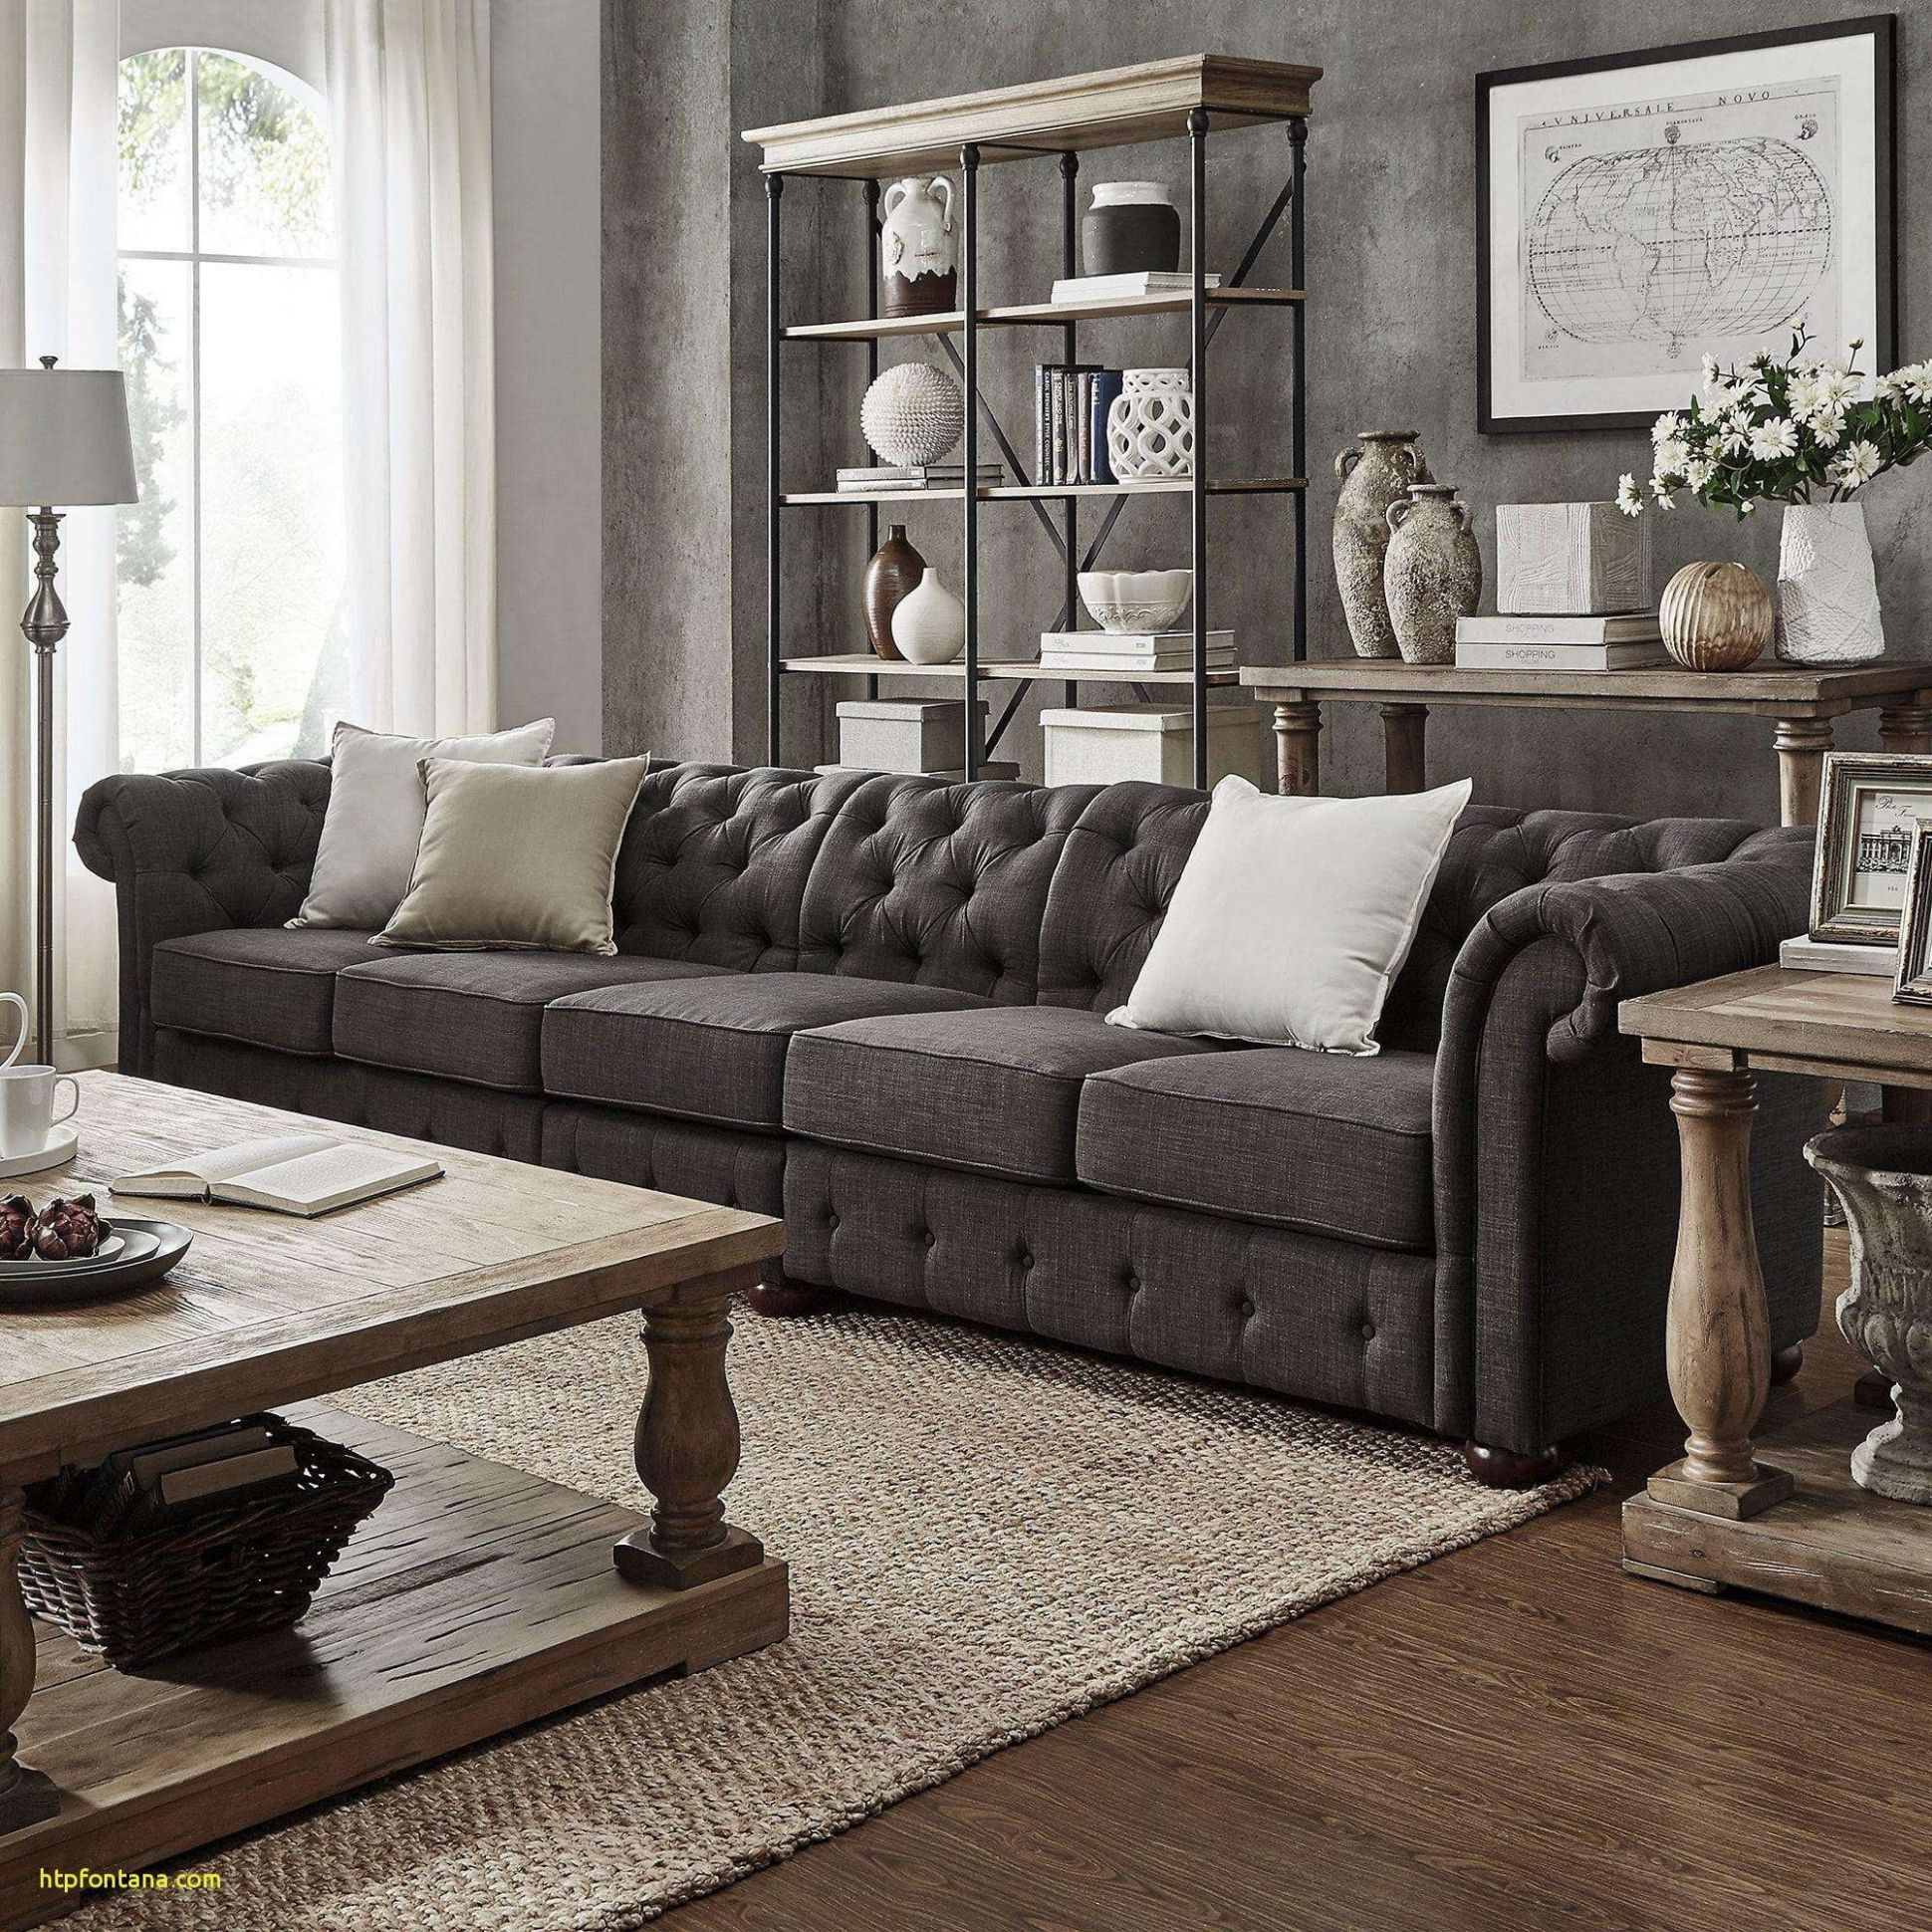 Living Room Black Couch Ideas Surprising Awesome Interior And ..